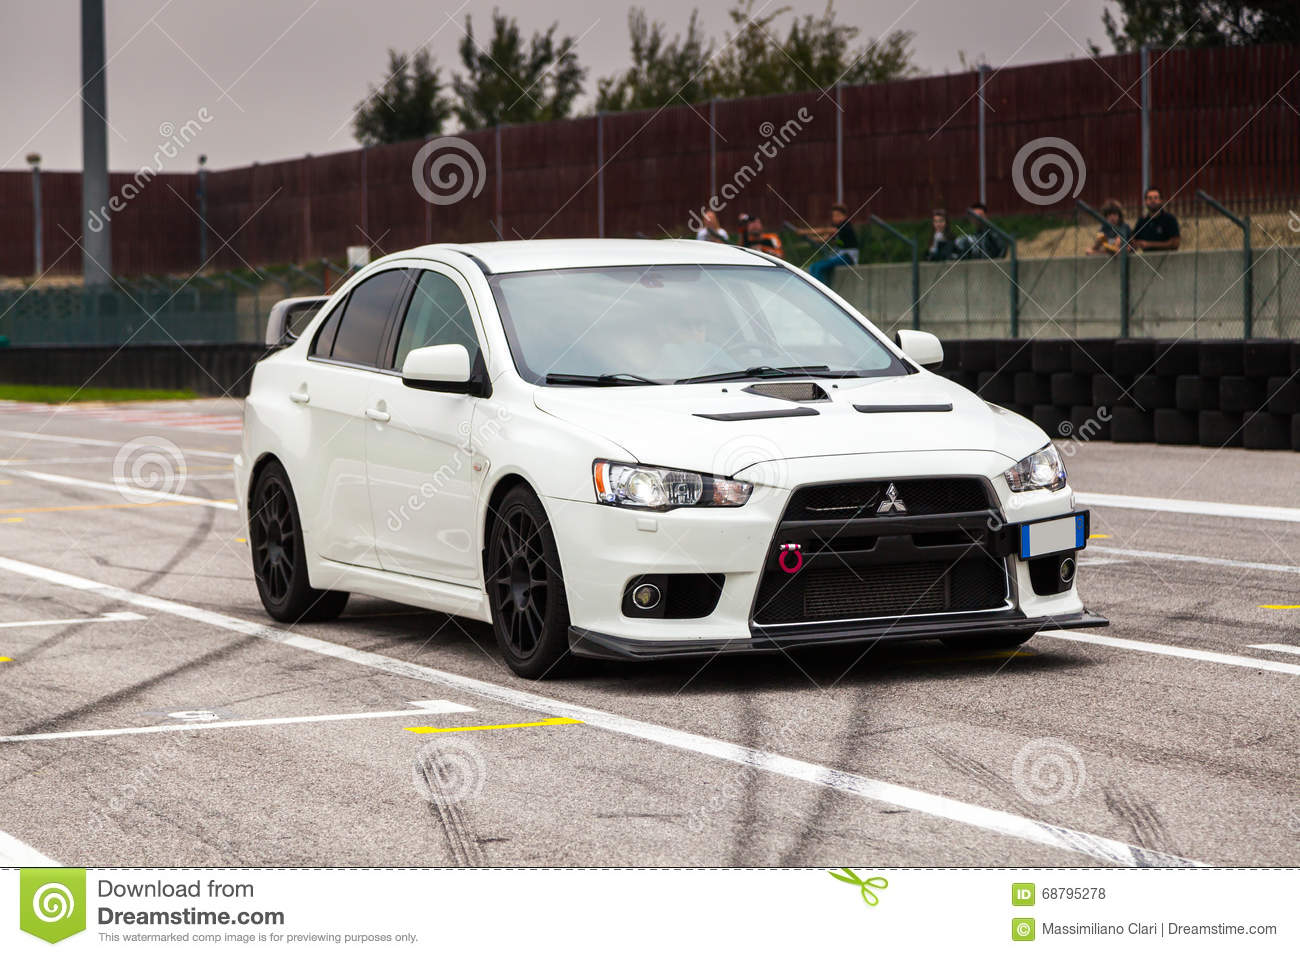 Mitsubishi EVO 10 editorial stock photo. Image of drive - 68795278